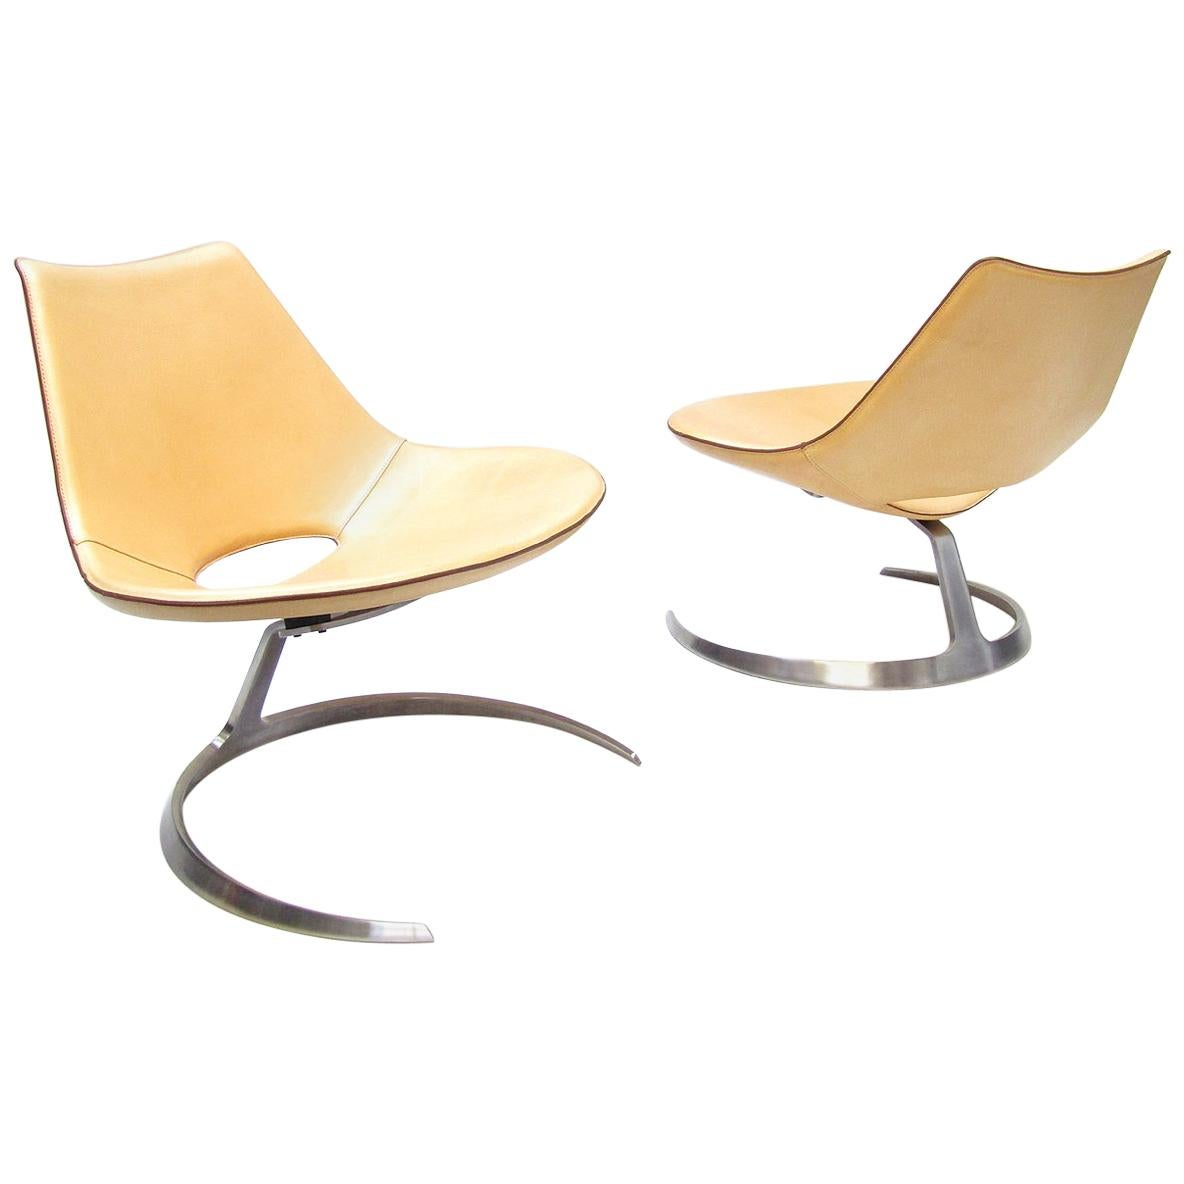 Two Danish Scimitar Chairs by Preben Fabricius & Jørgen Kastholm for Bo-Ex